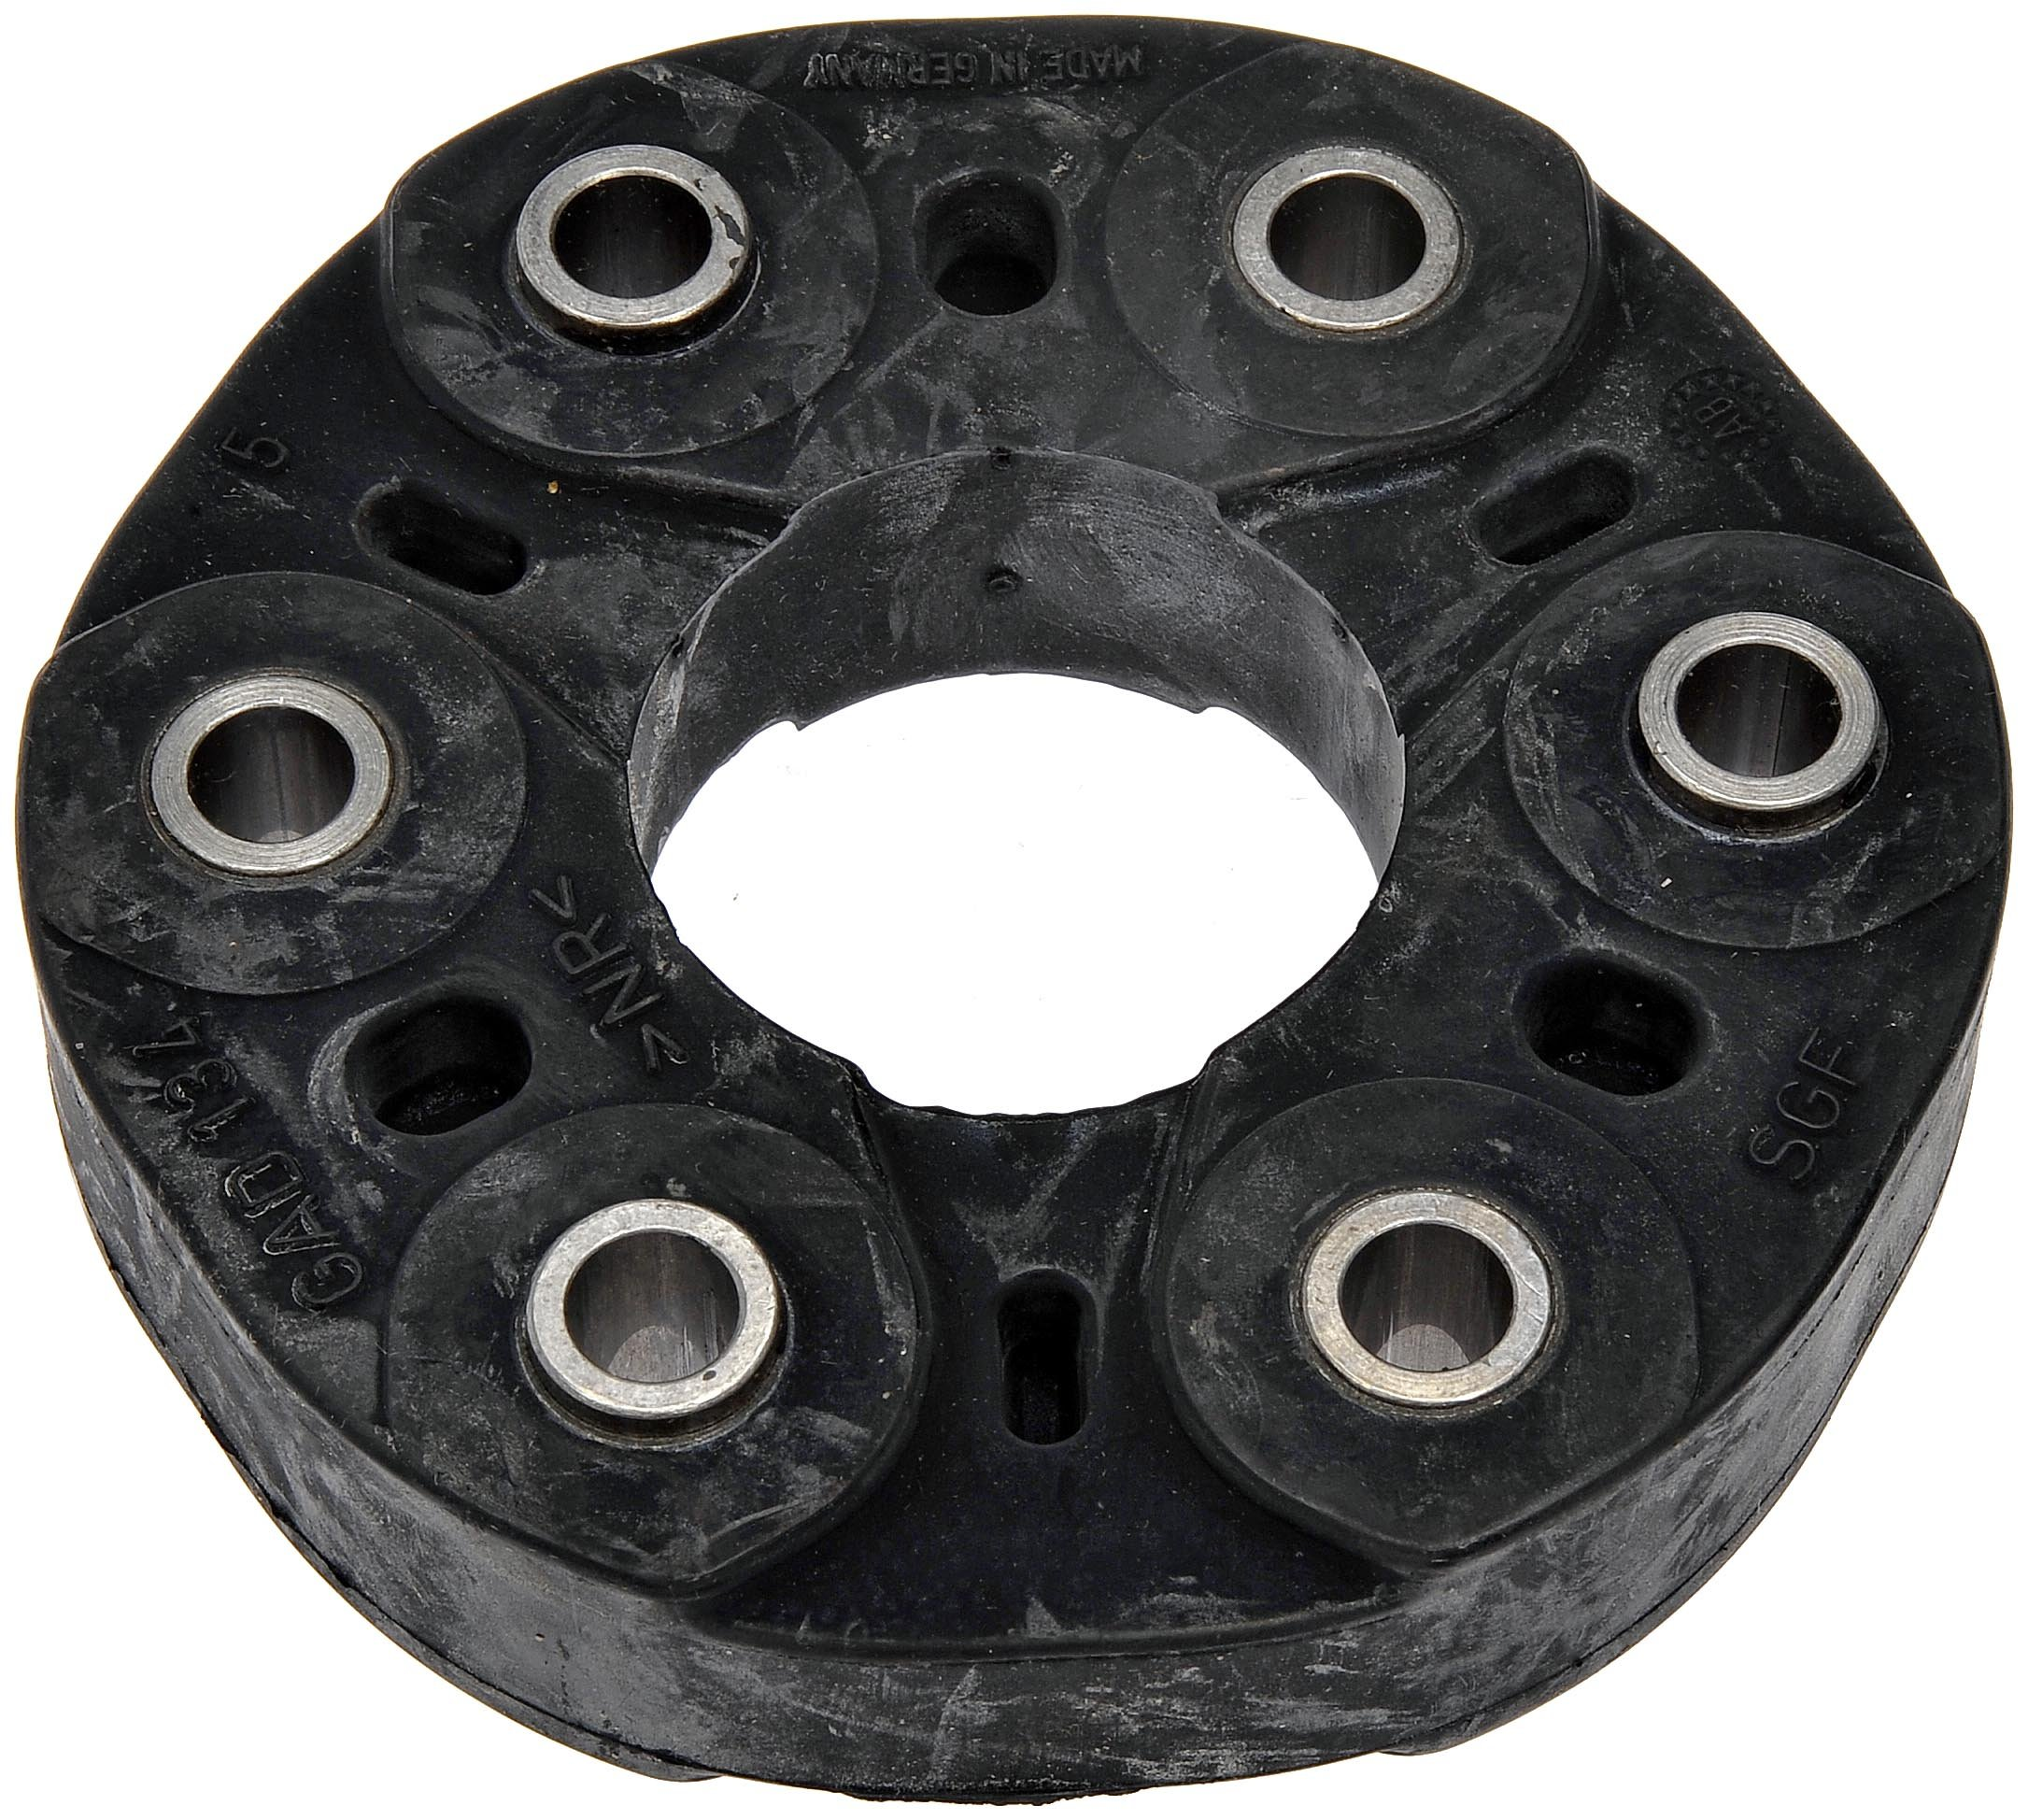 Dorman 935-504 Driveshaft Coupler